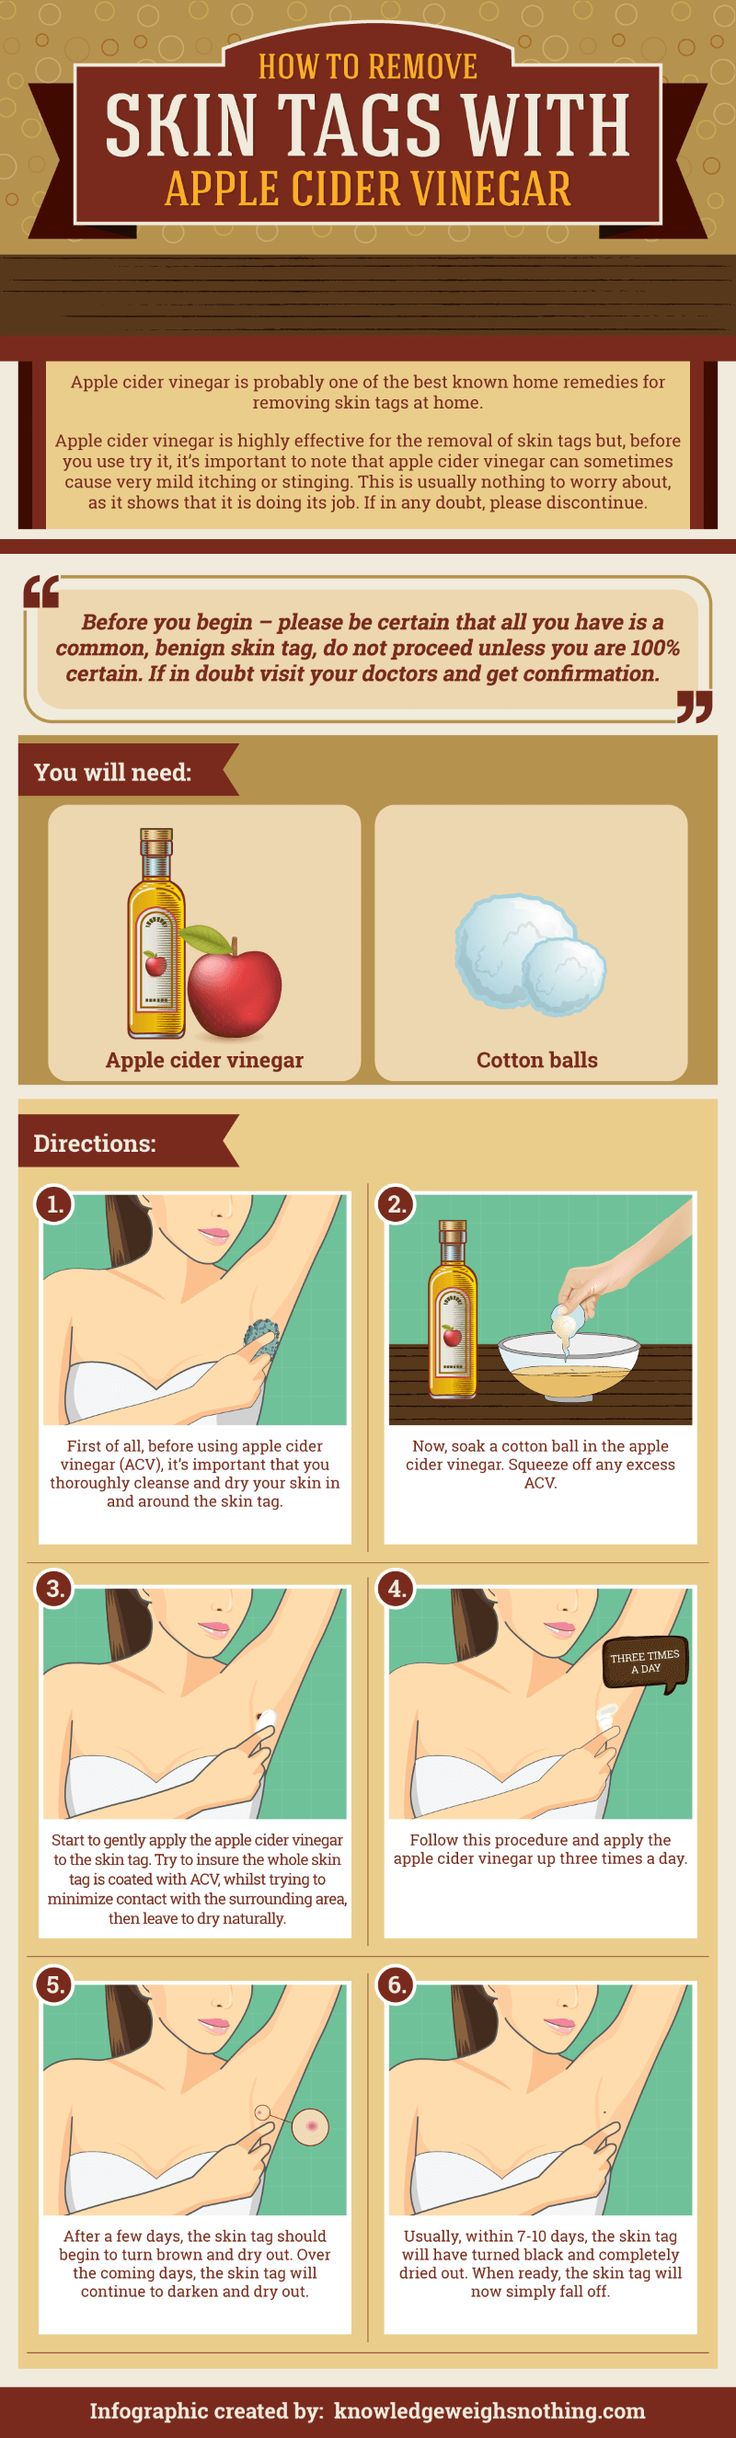 How to remove skin tags infographic. Full post and instructions here: https://knowledgeweighsnothing.com/how-to-remove-skin-tags-with-apple-cider-vinegar/